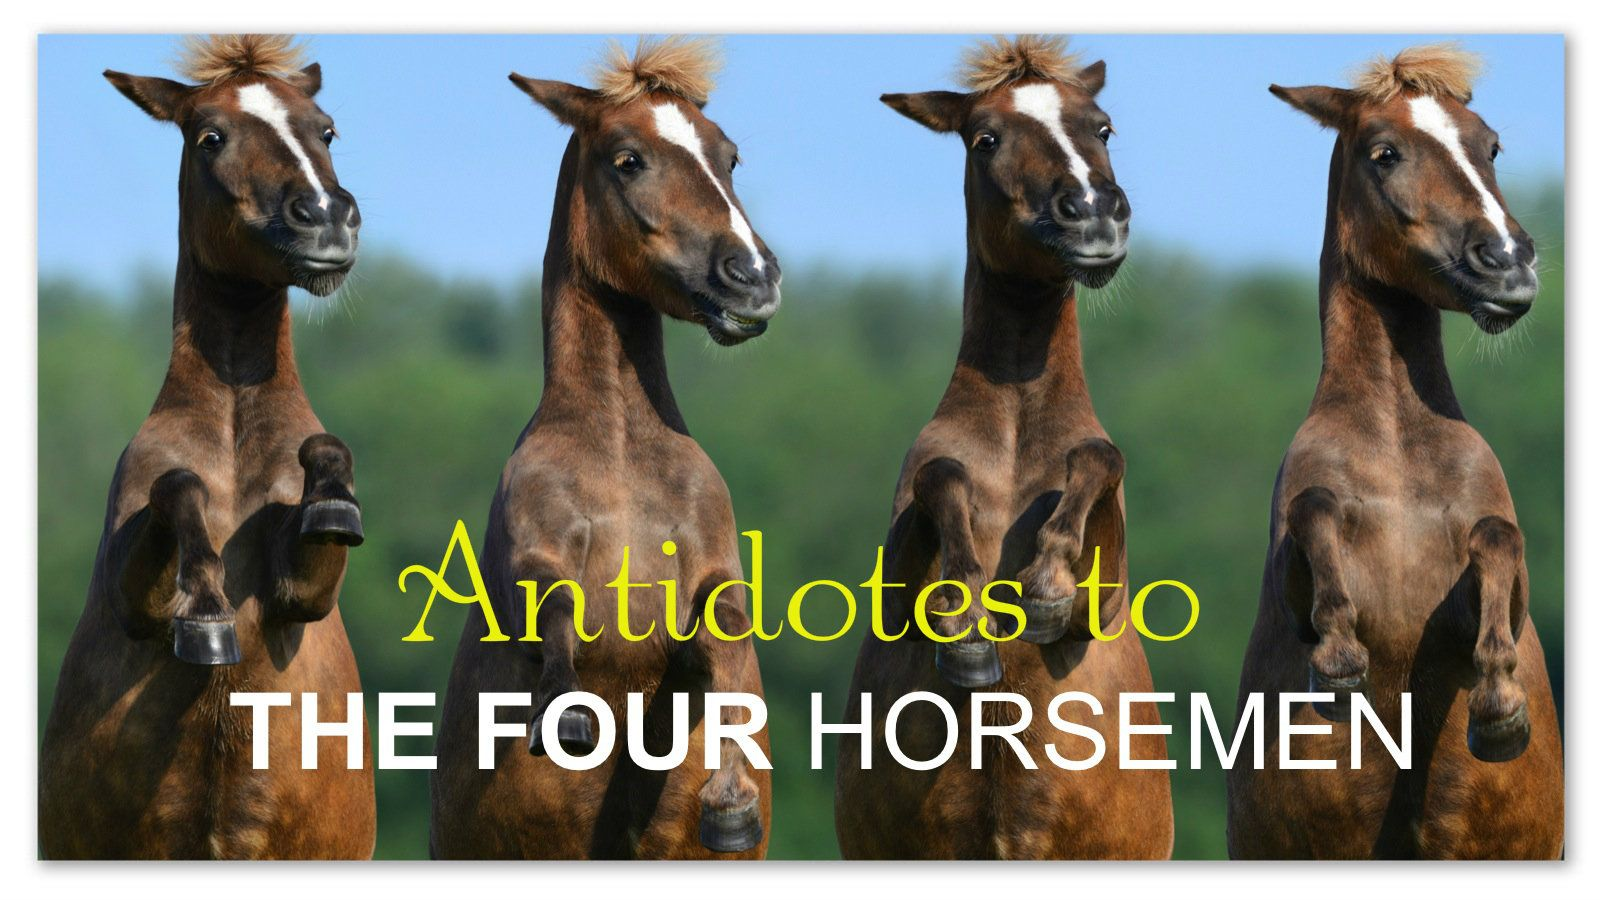 The Four Horsemen The Antidotes